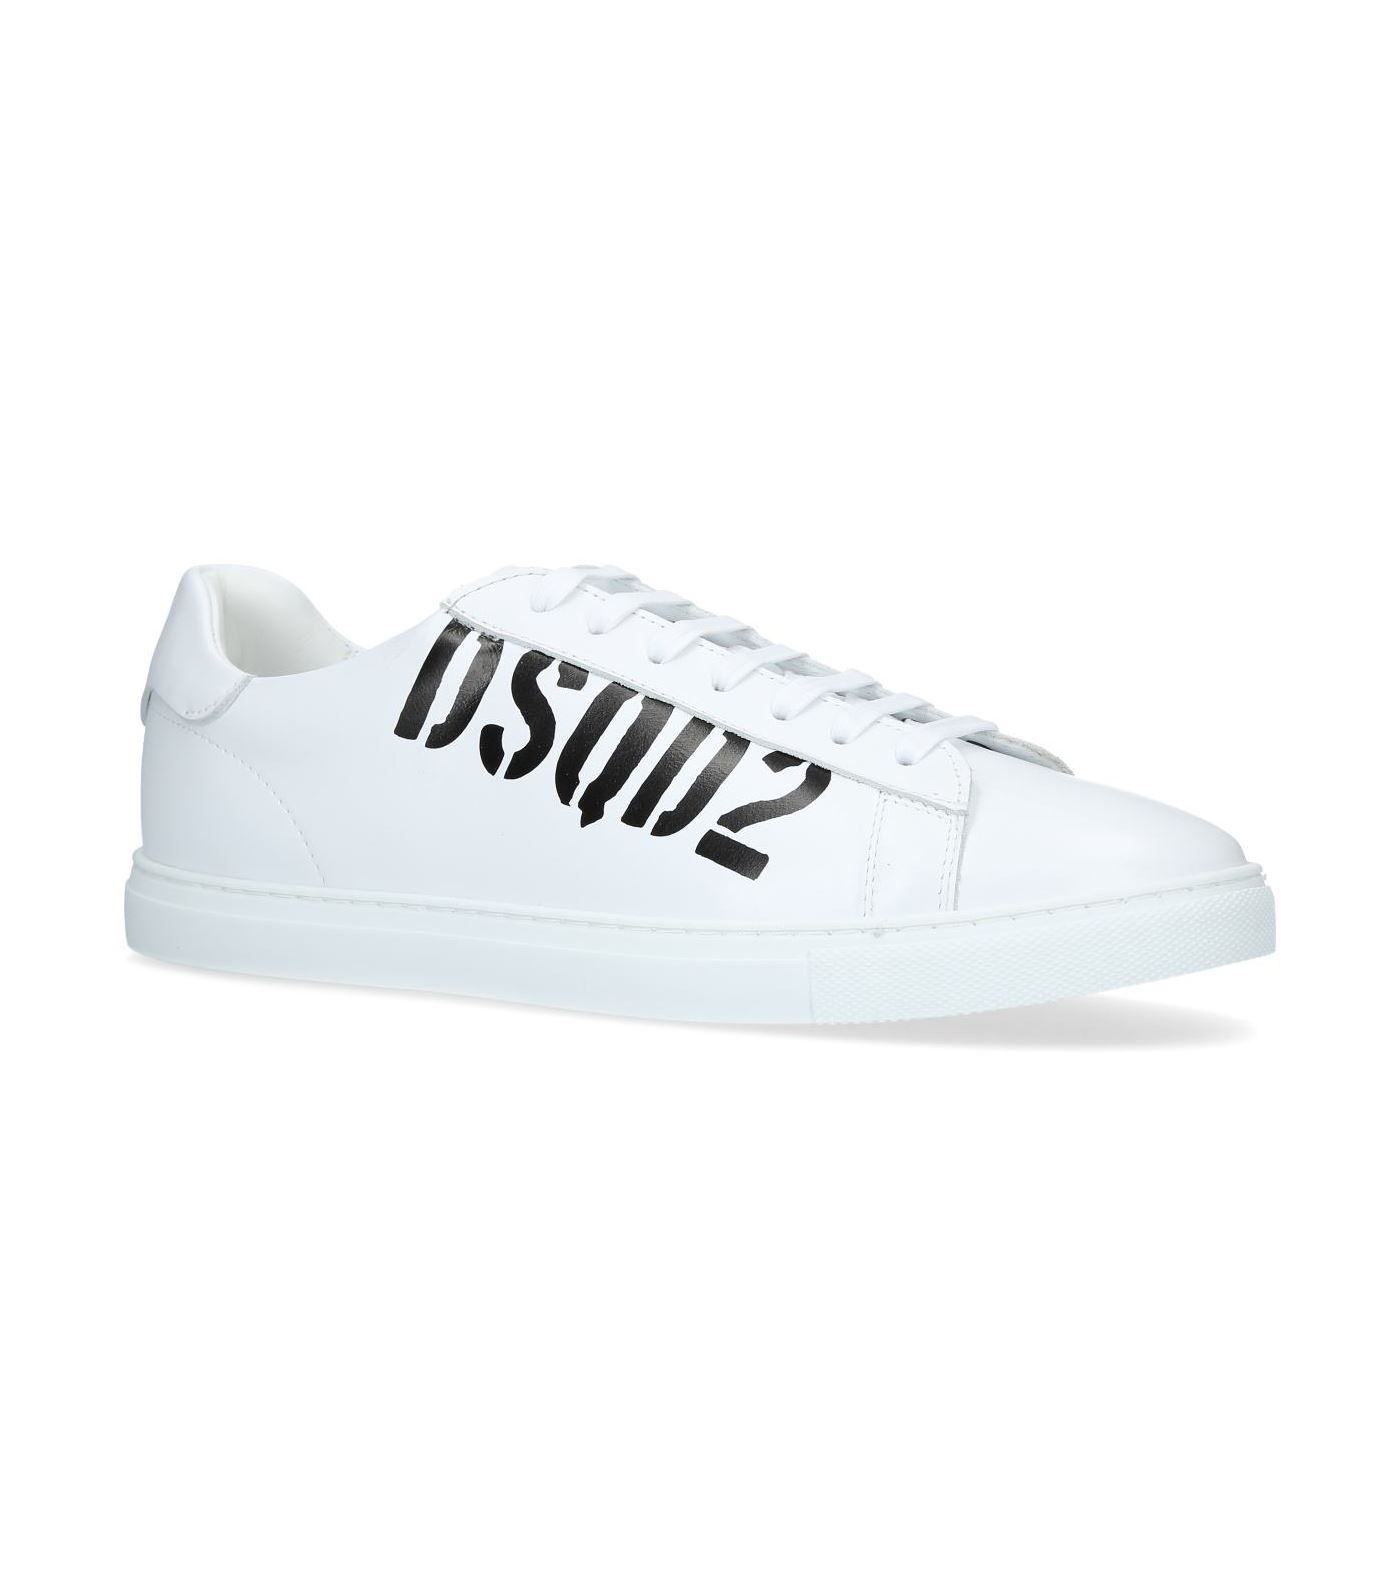 ee444d5bcf4 DSQUARED2 LEATHER LOGO SNEAKERS.  dsquared2  shoes